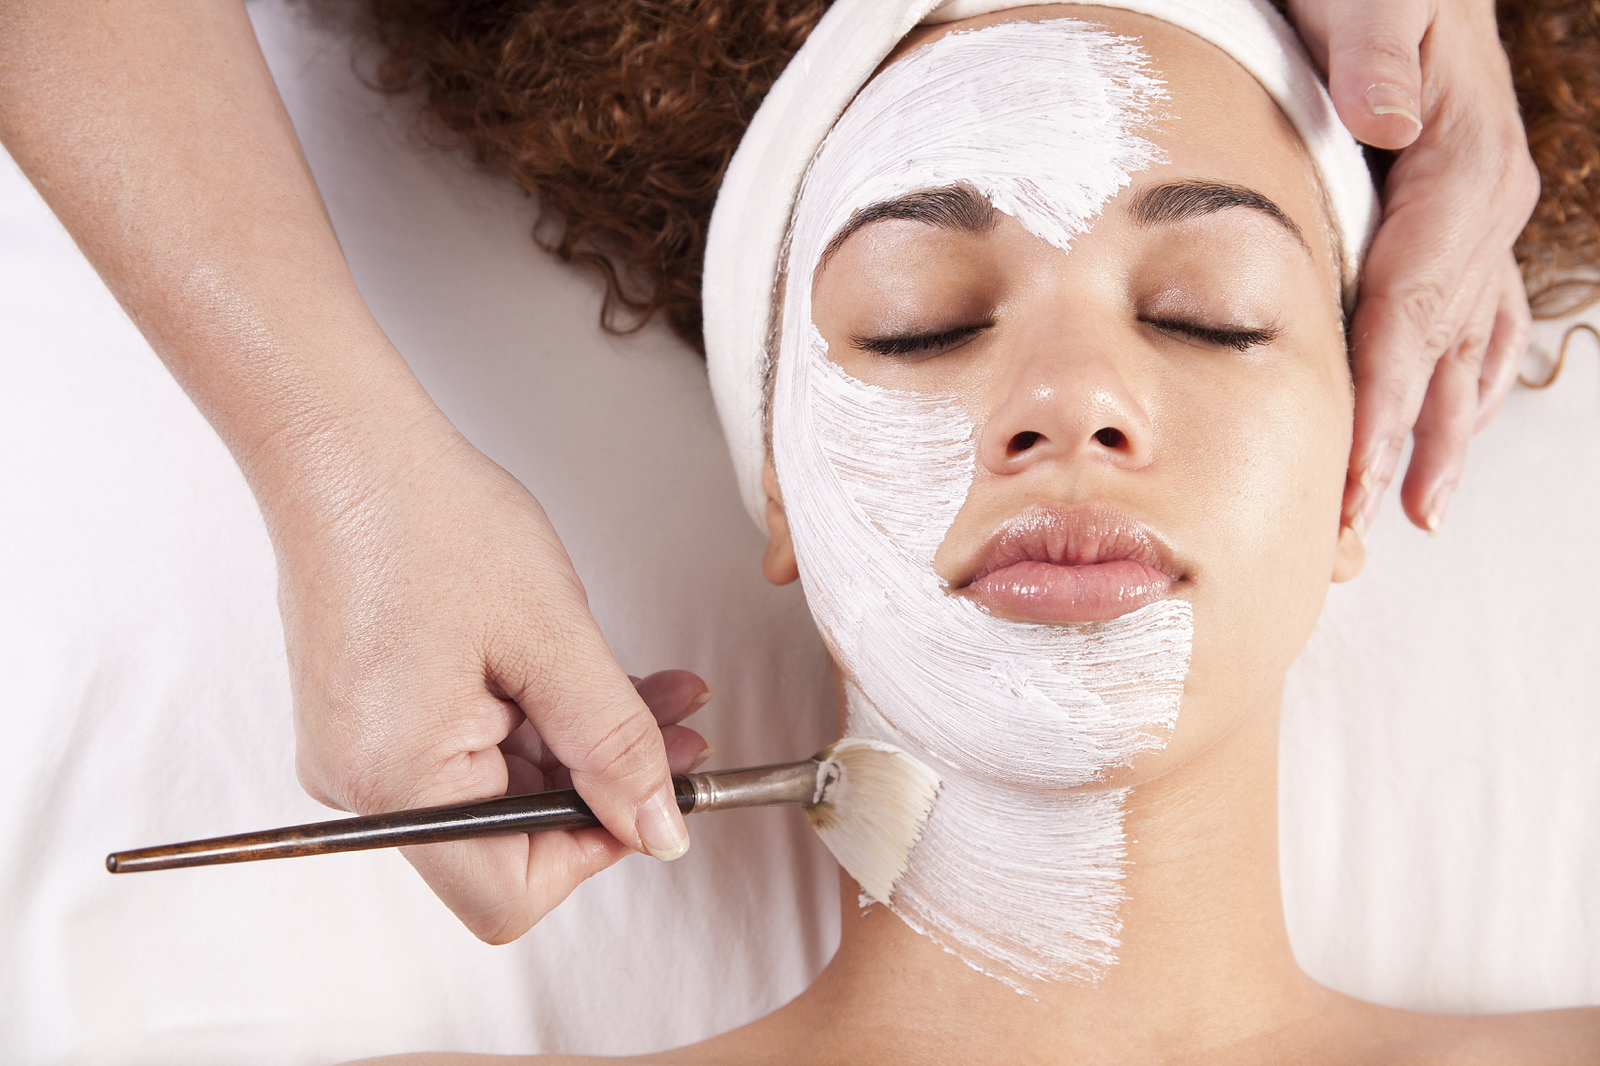 Wondering why you should visit a professional to do your facial? We have the answers inside.